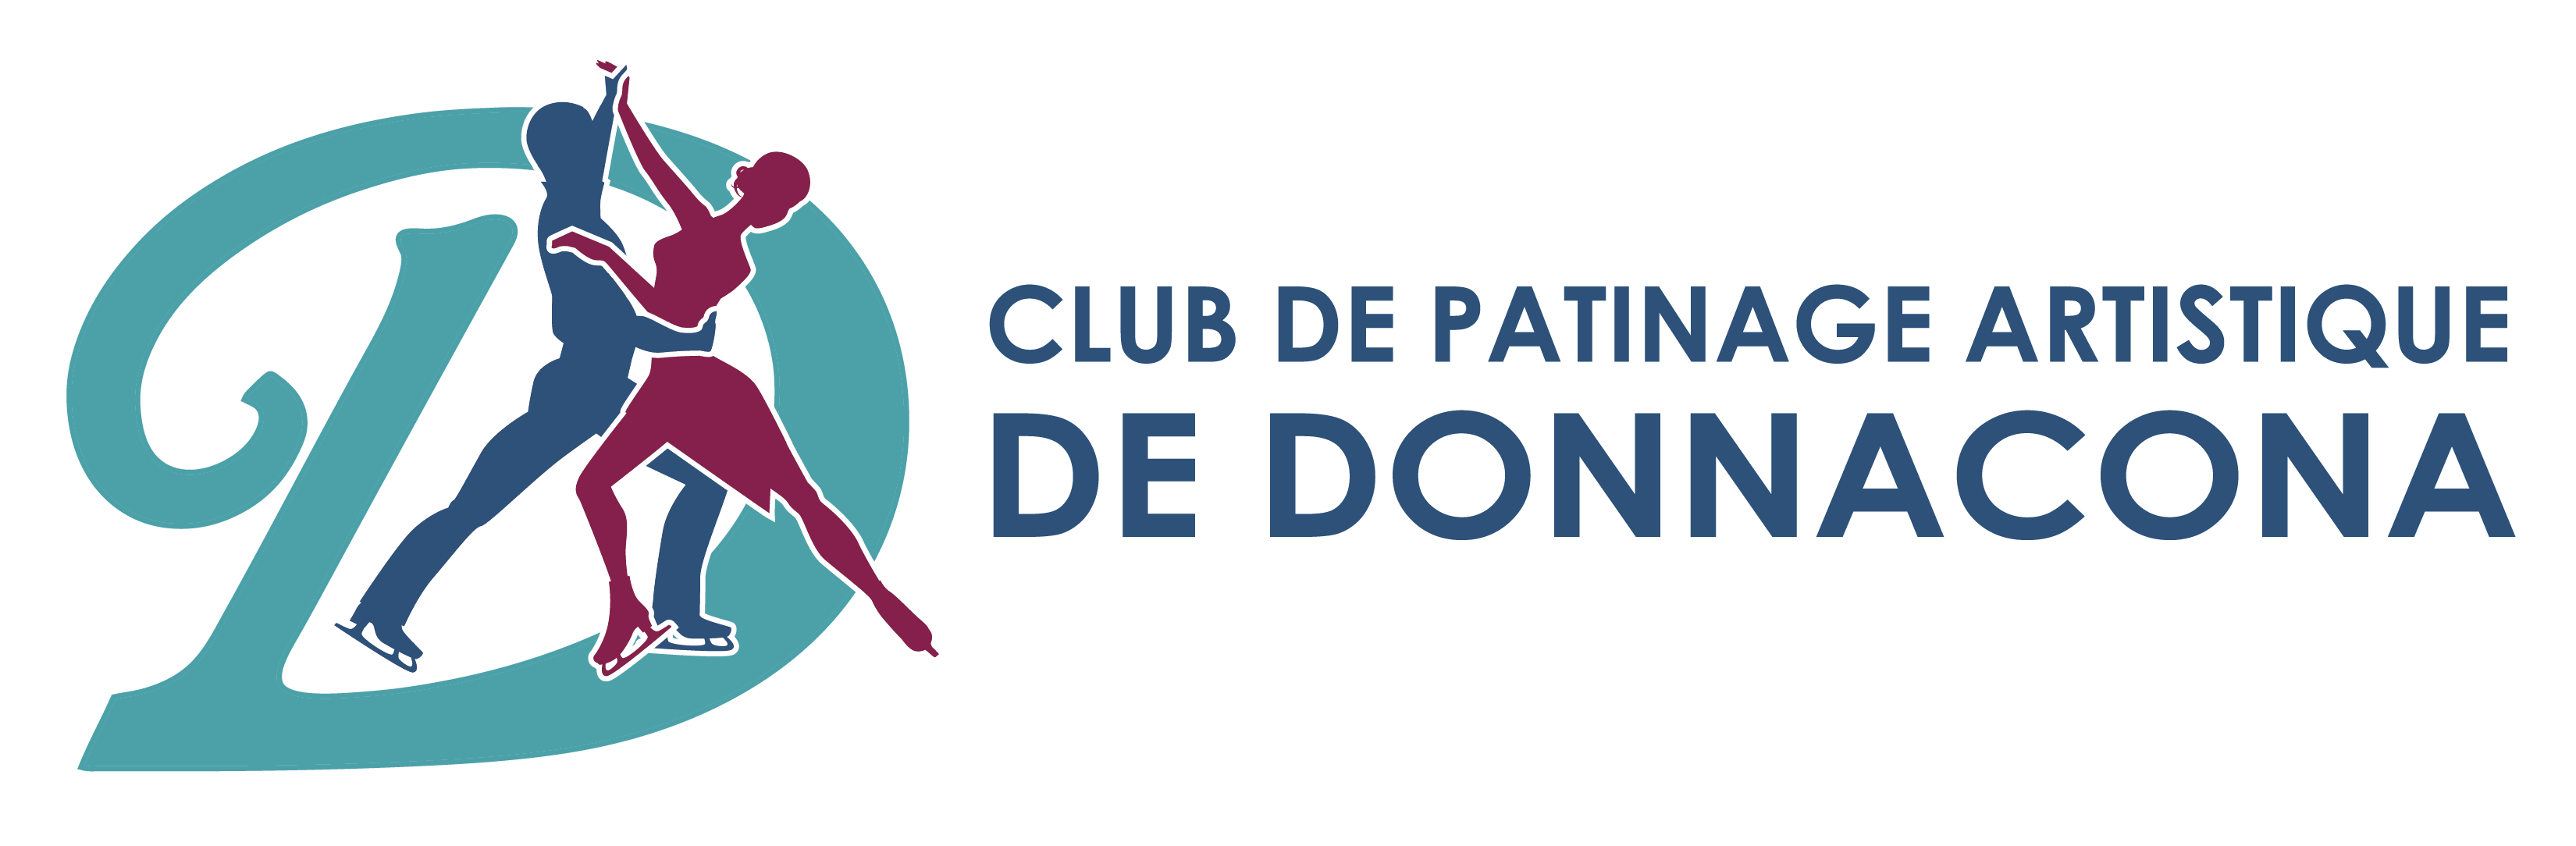 Club de patinage artistique de Donnacona